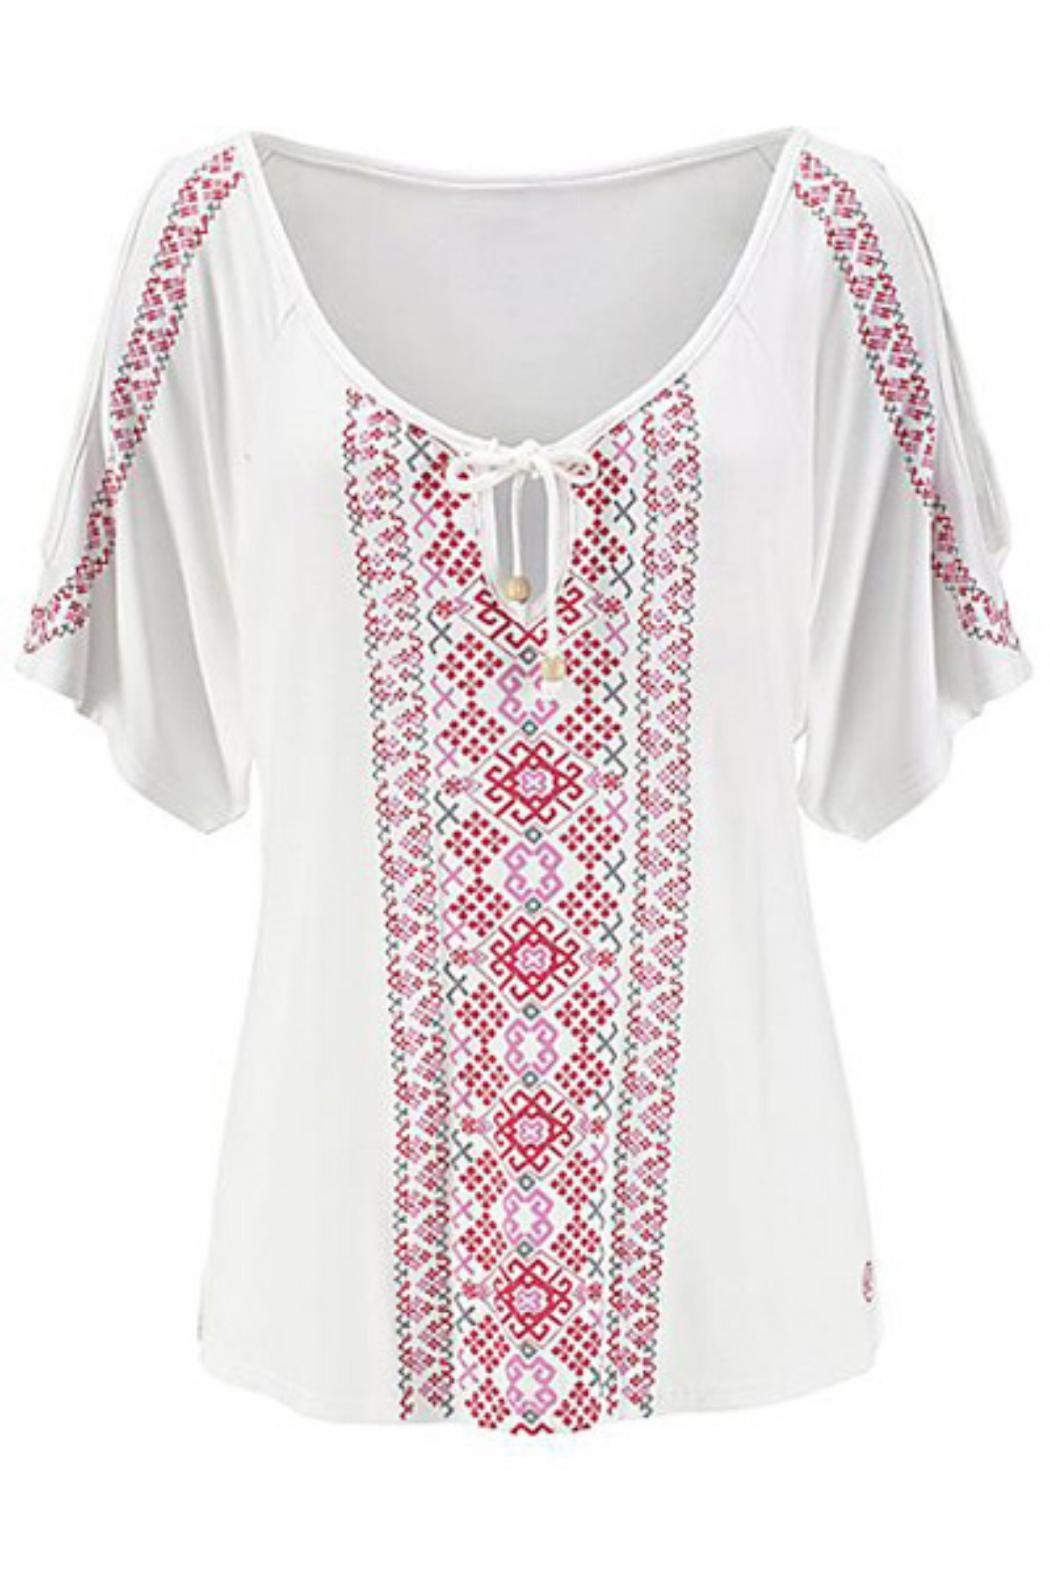 Unbranded Cream Printed Top - Front Full Image